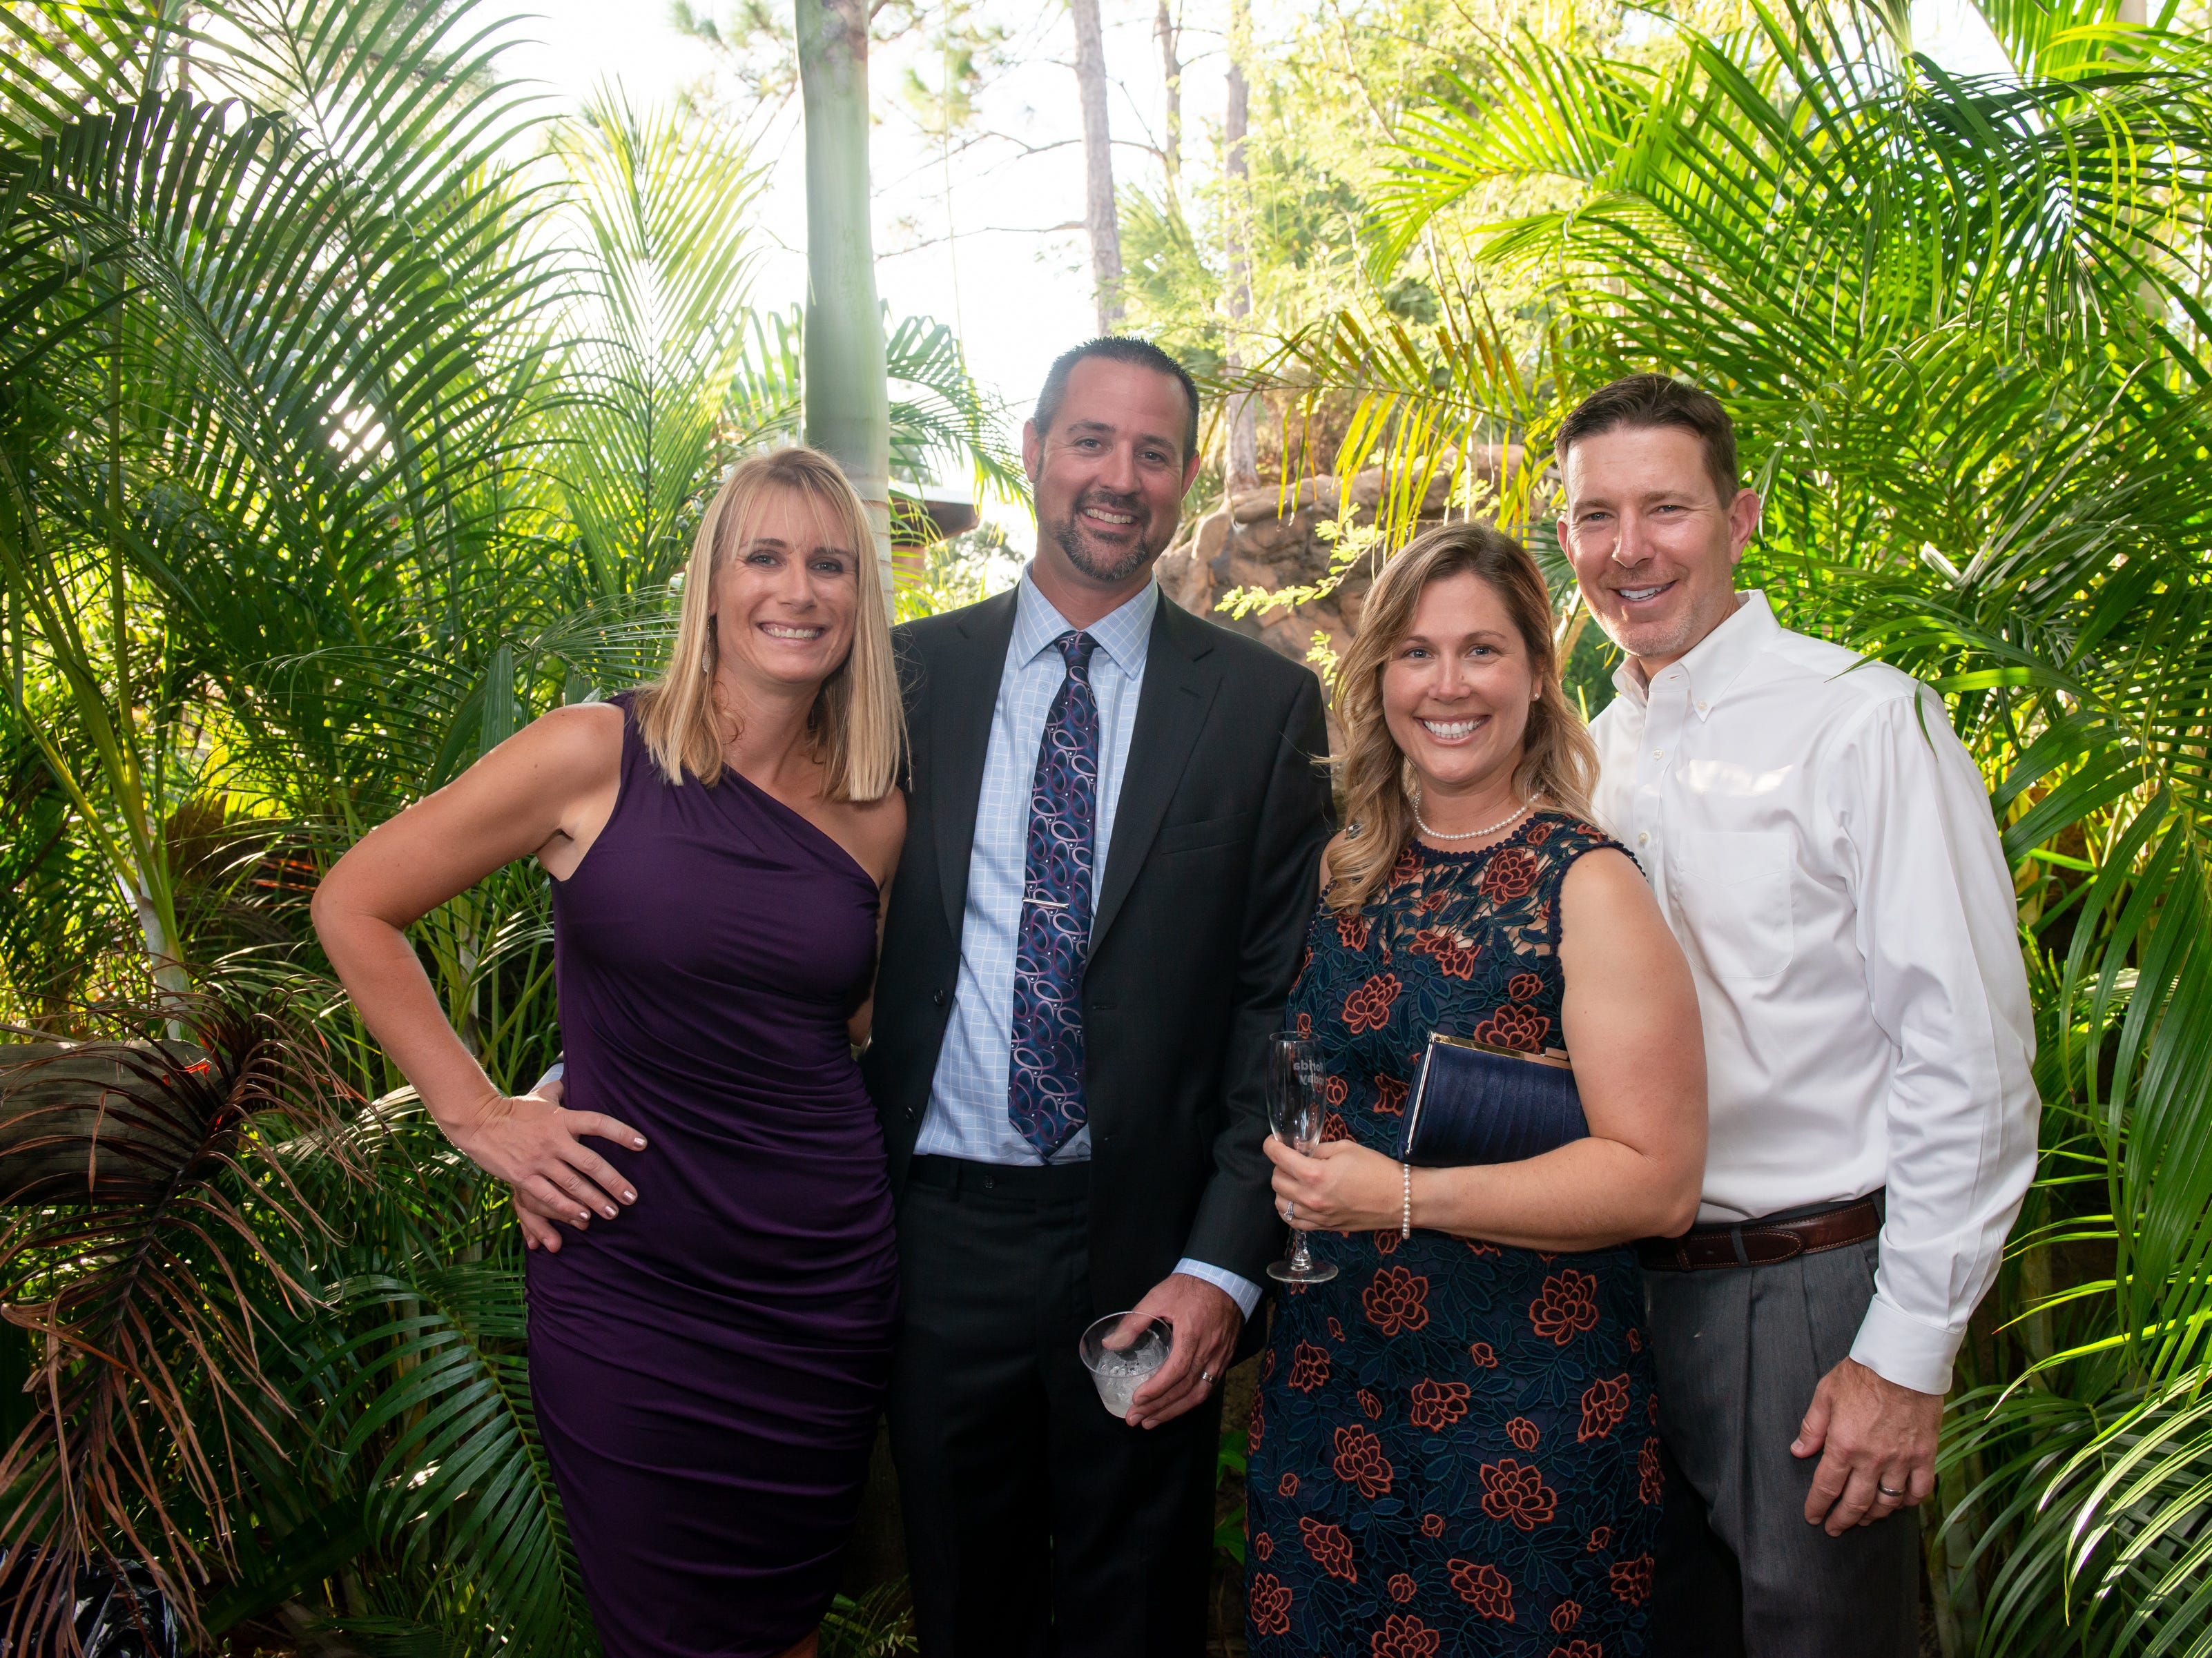 Samantha Gerrits, Mark Gerrits, Lauren Curington and Frank Curington at the James Beard Foundation Celebrity Chef Dinner held at the Brevard Zoo. (Photo by Amanda Stratford, for FLORIDA TODAY)